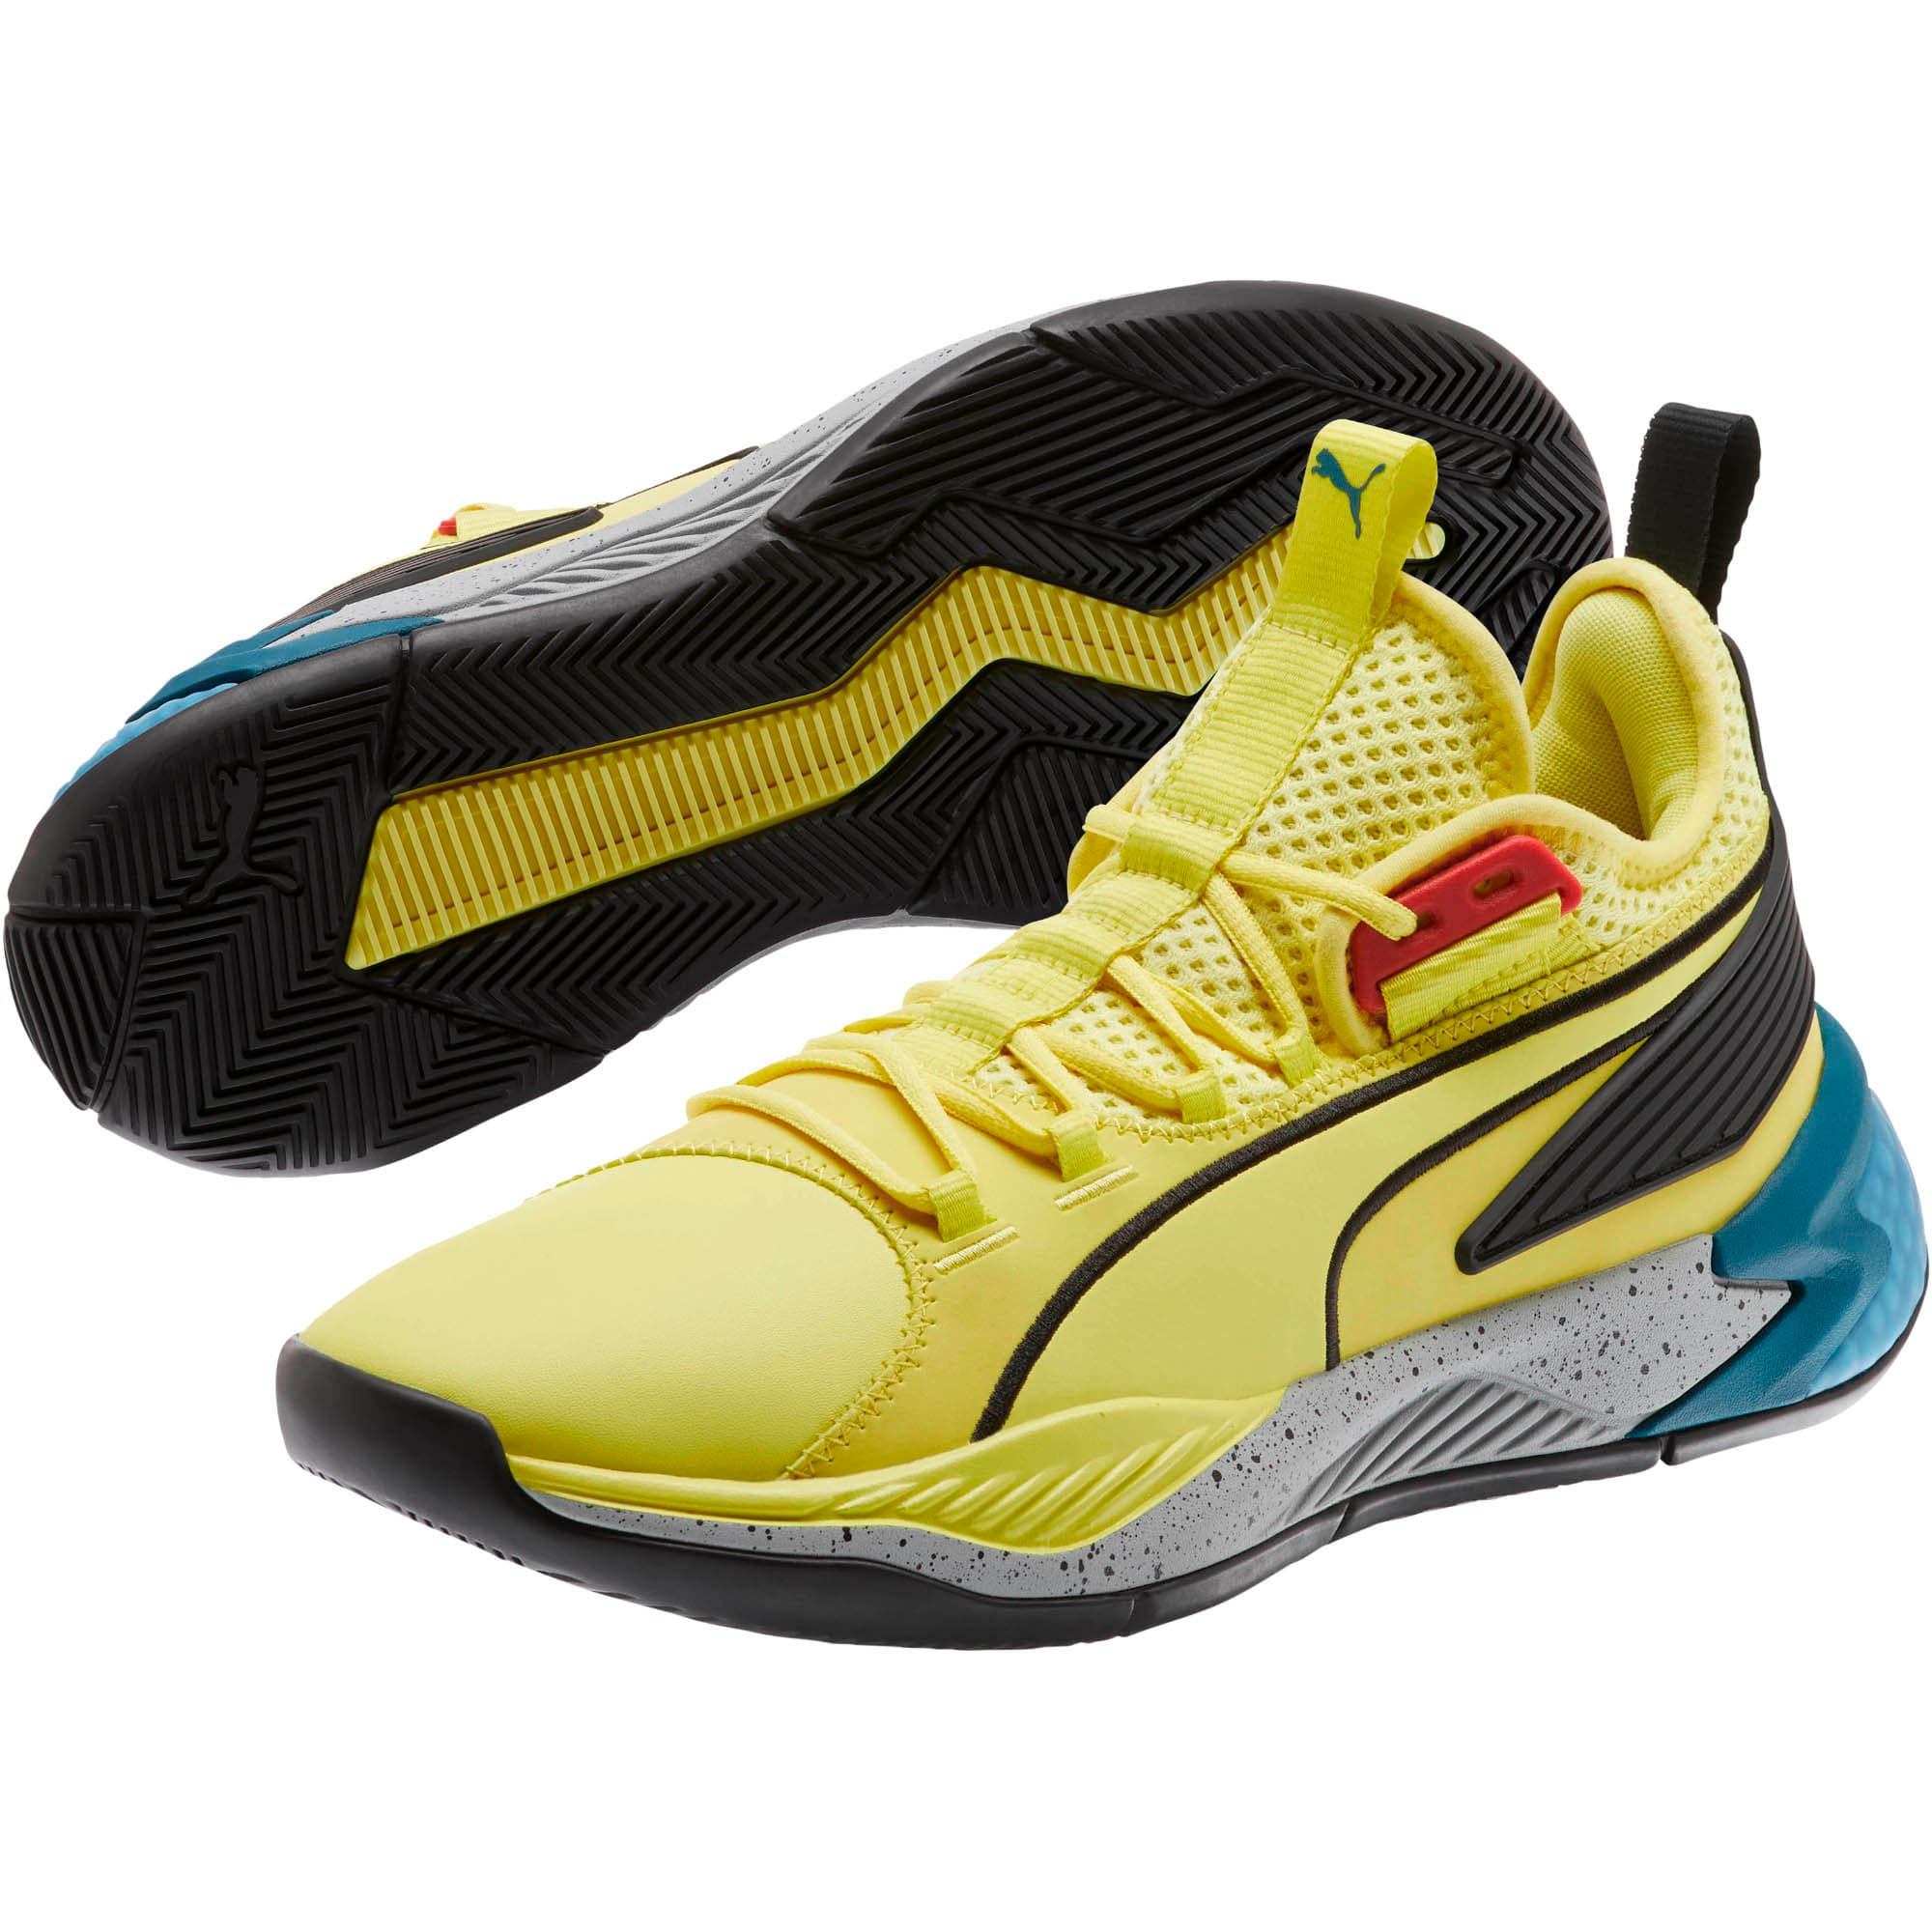 Thumbnail 2 van Uproar Spectra basketbalschoenen, Limelight-zwart-wit, medium